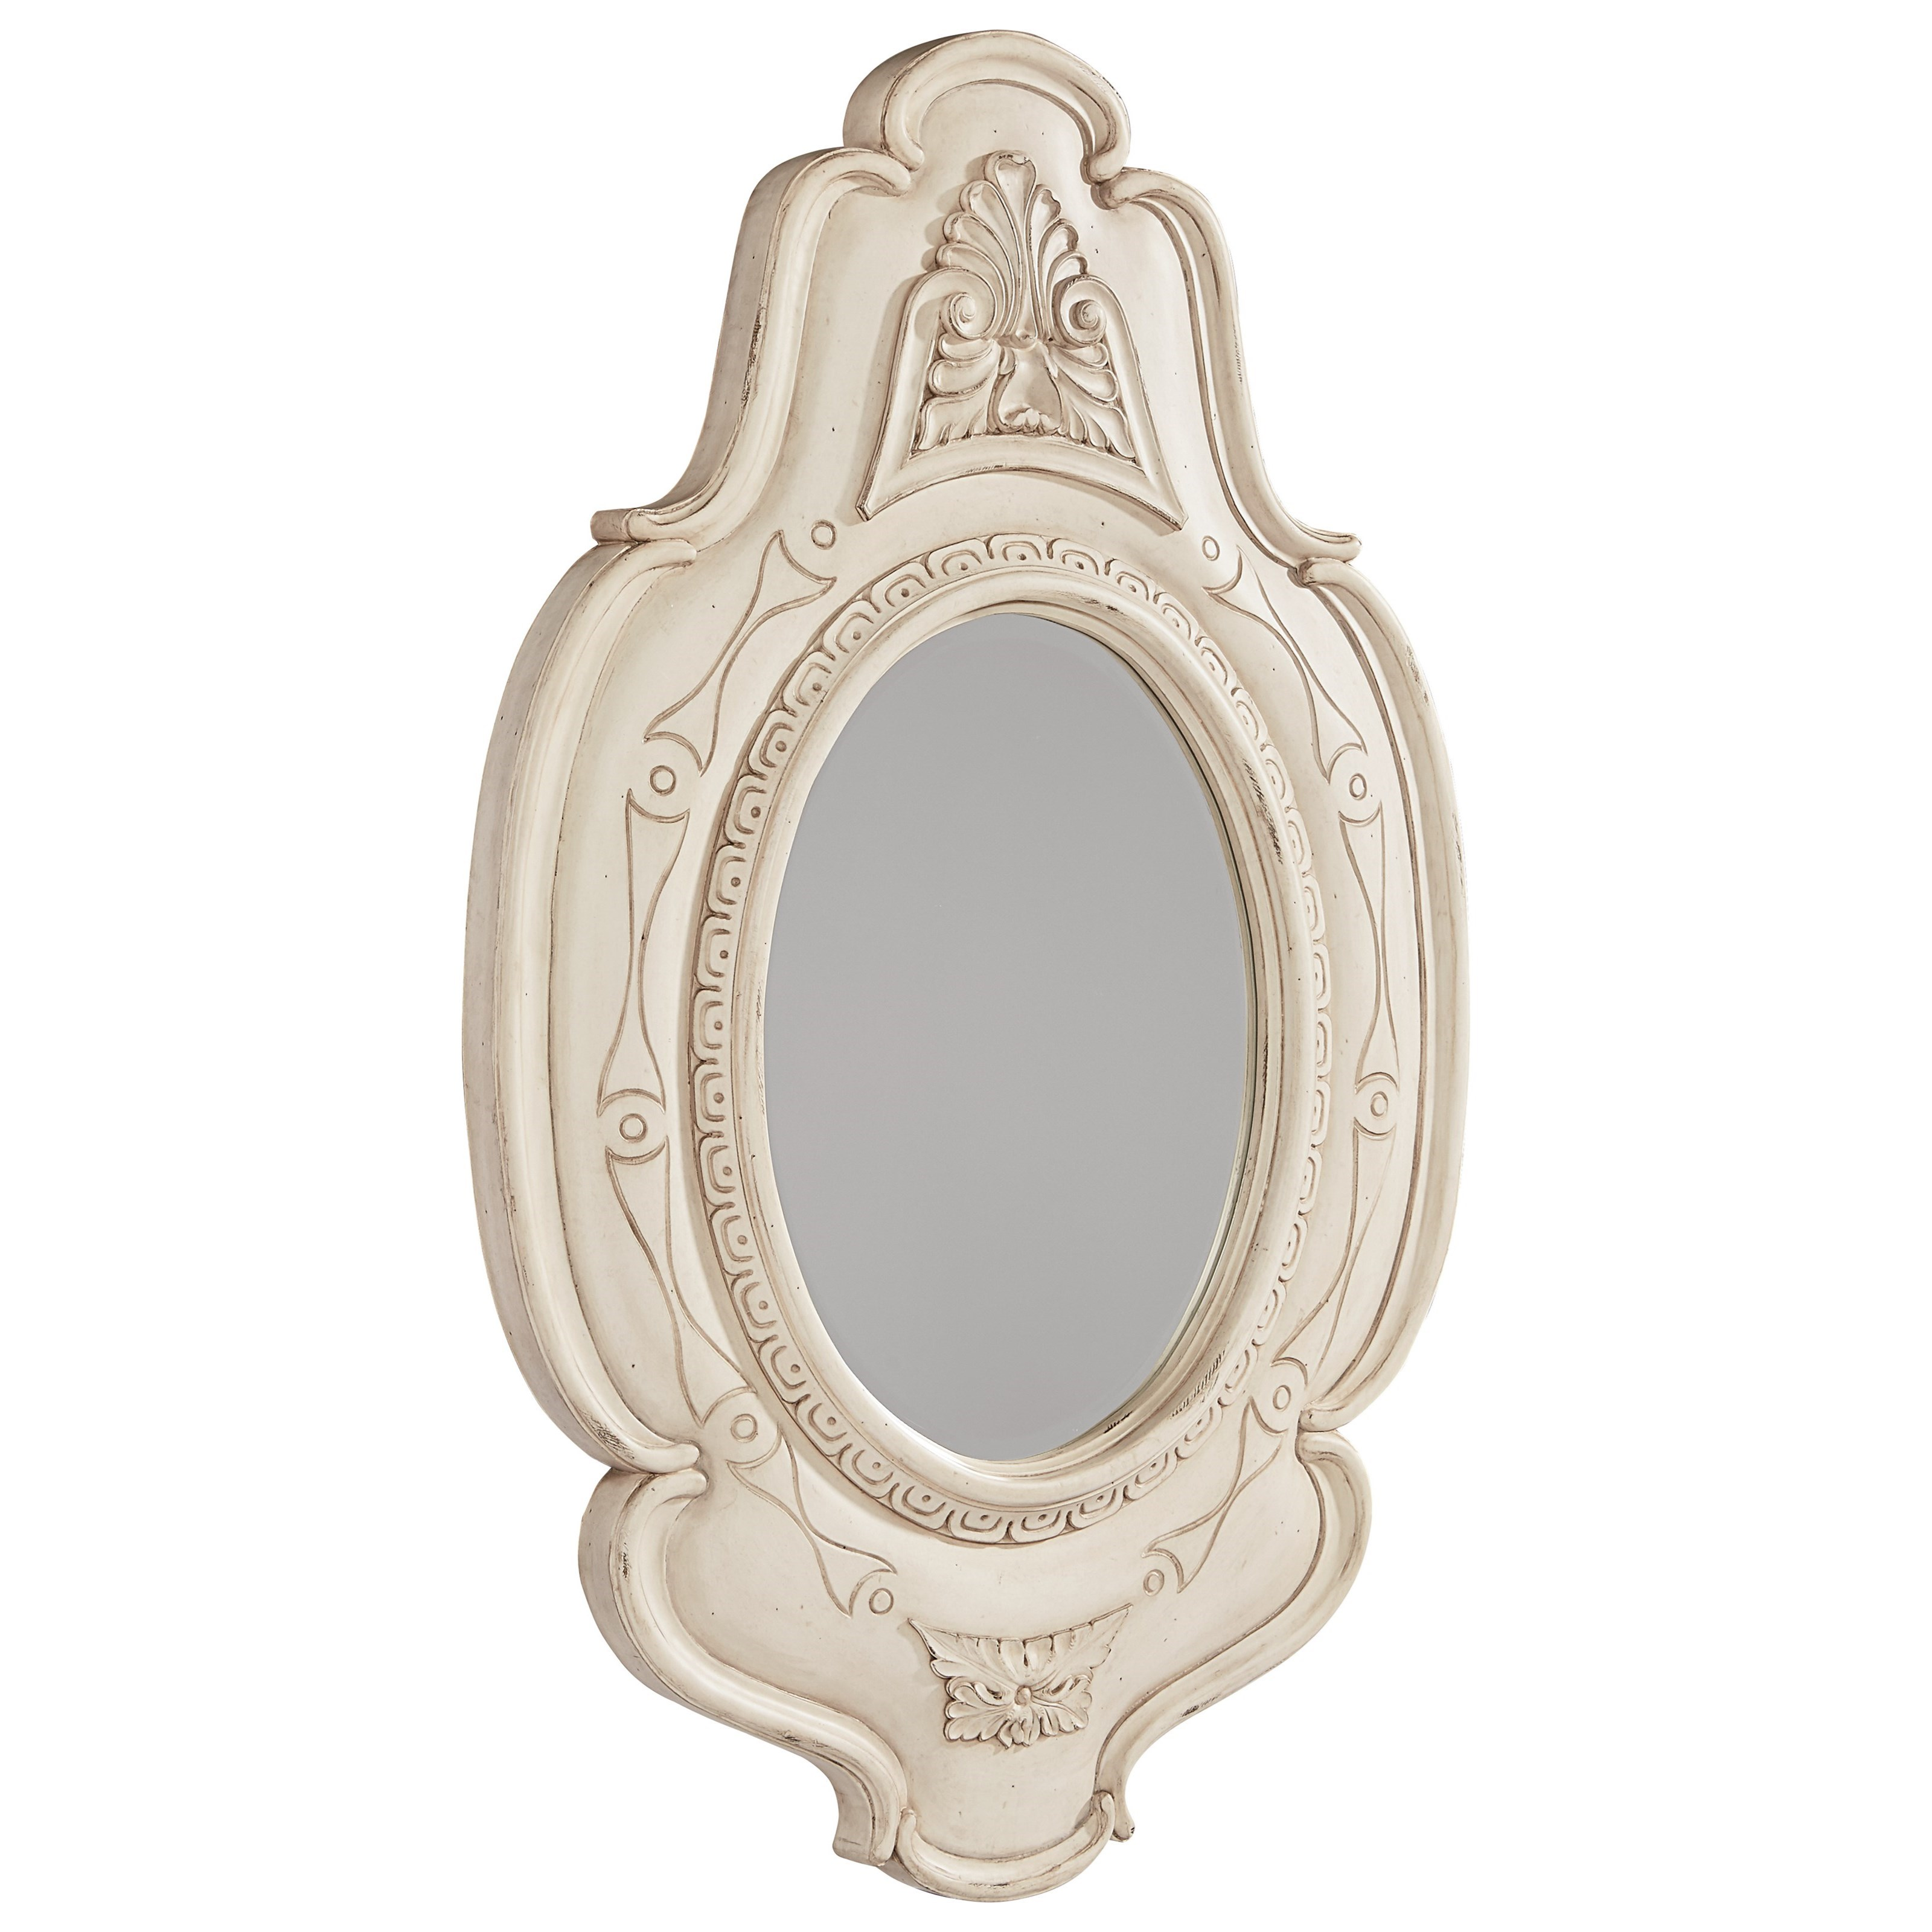 Magnolia Home by Joanna Gaines French Inspired Embellished Cameo Mirror - Antique White - Item Number: 3070208G